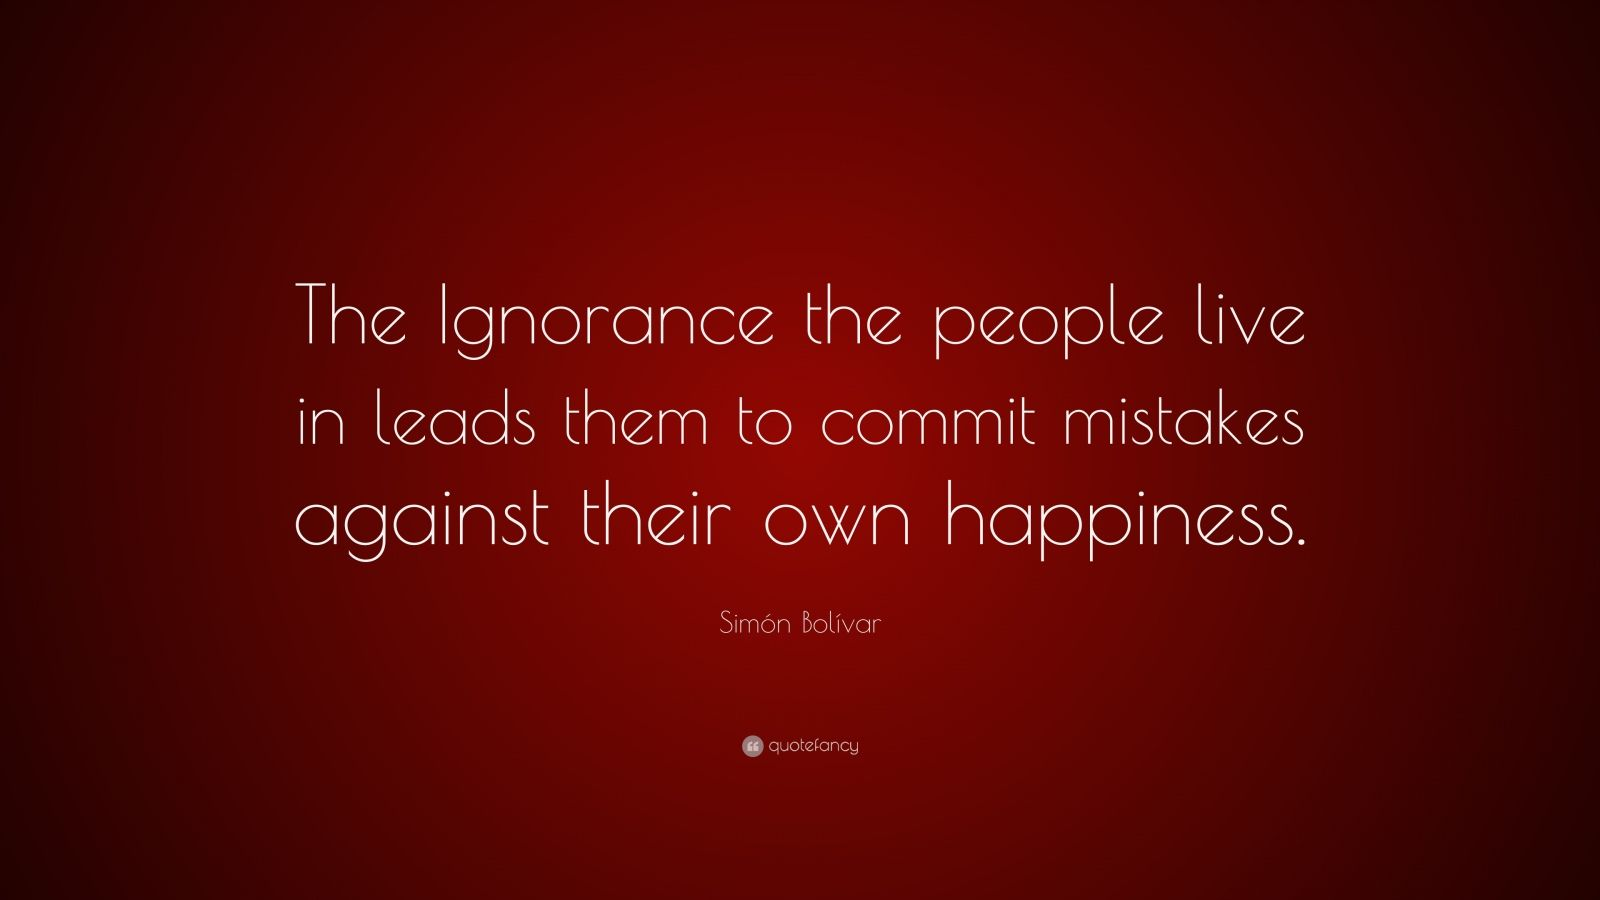 """Simón Bolívar Quote: """"The Ignorance the people live in leads them to commit mistakes against their own happiness."""""""